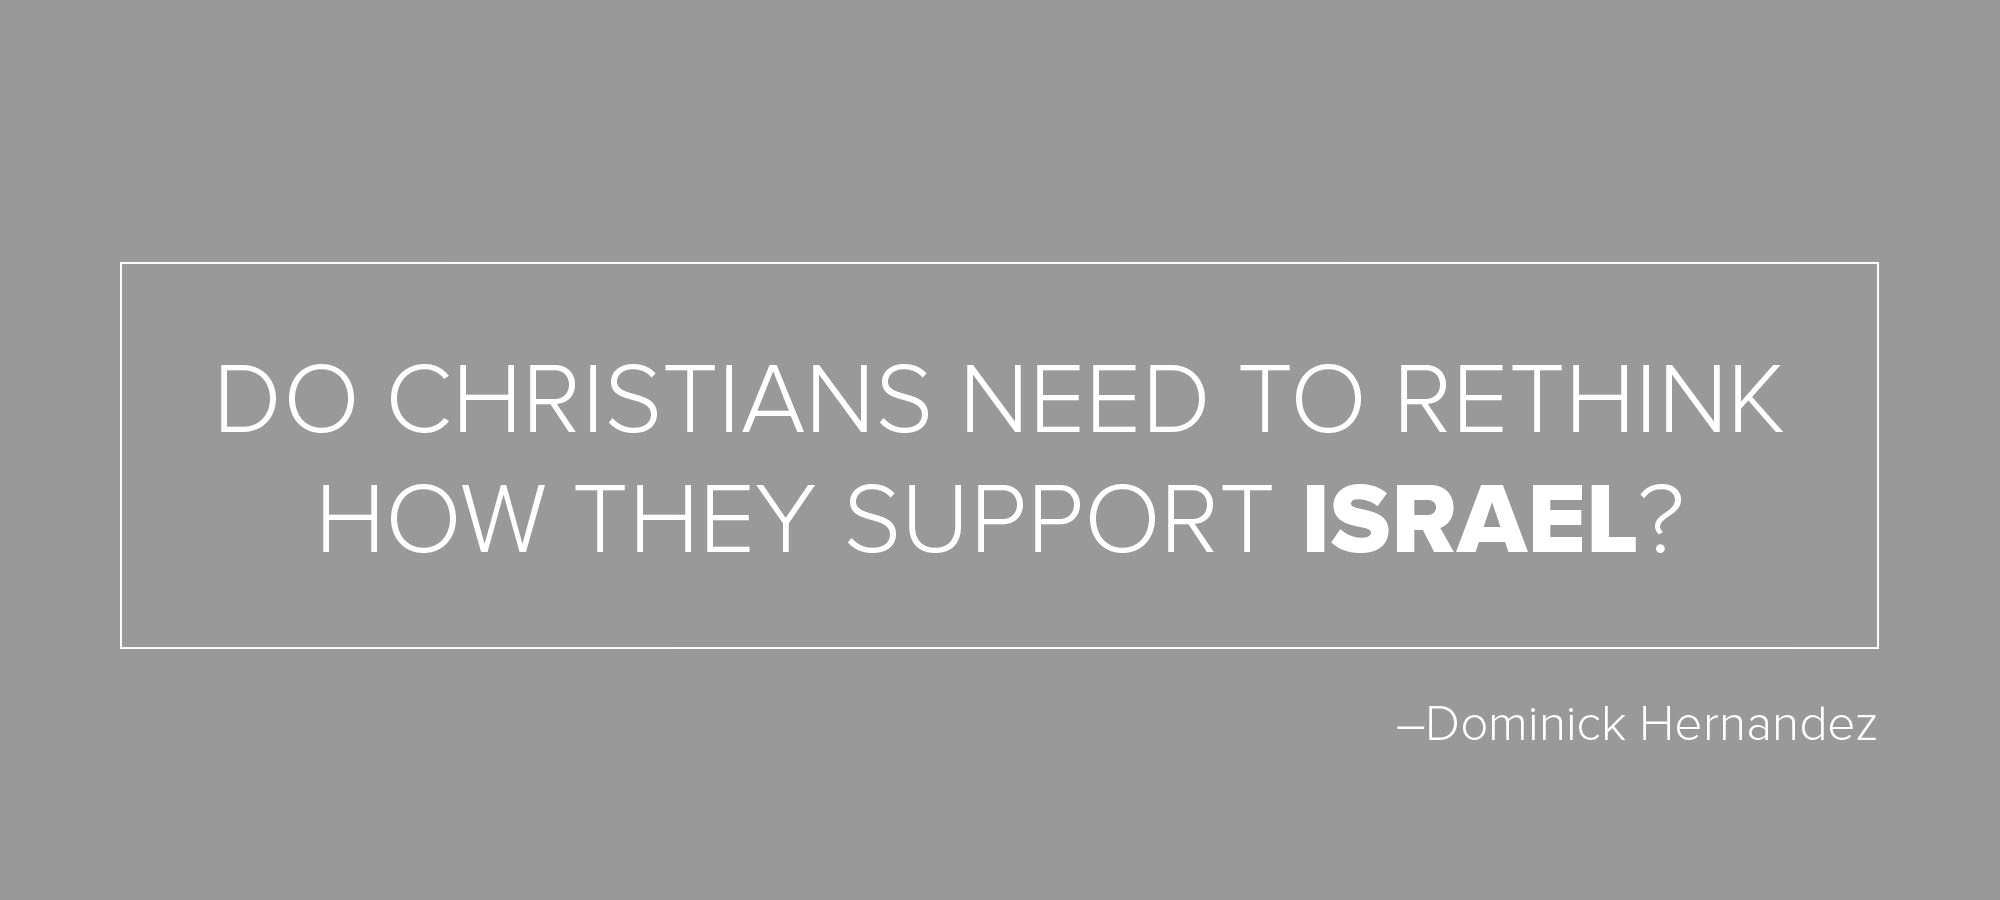 Do Christians Need To Rethink How They Support Israel?